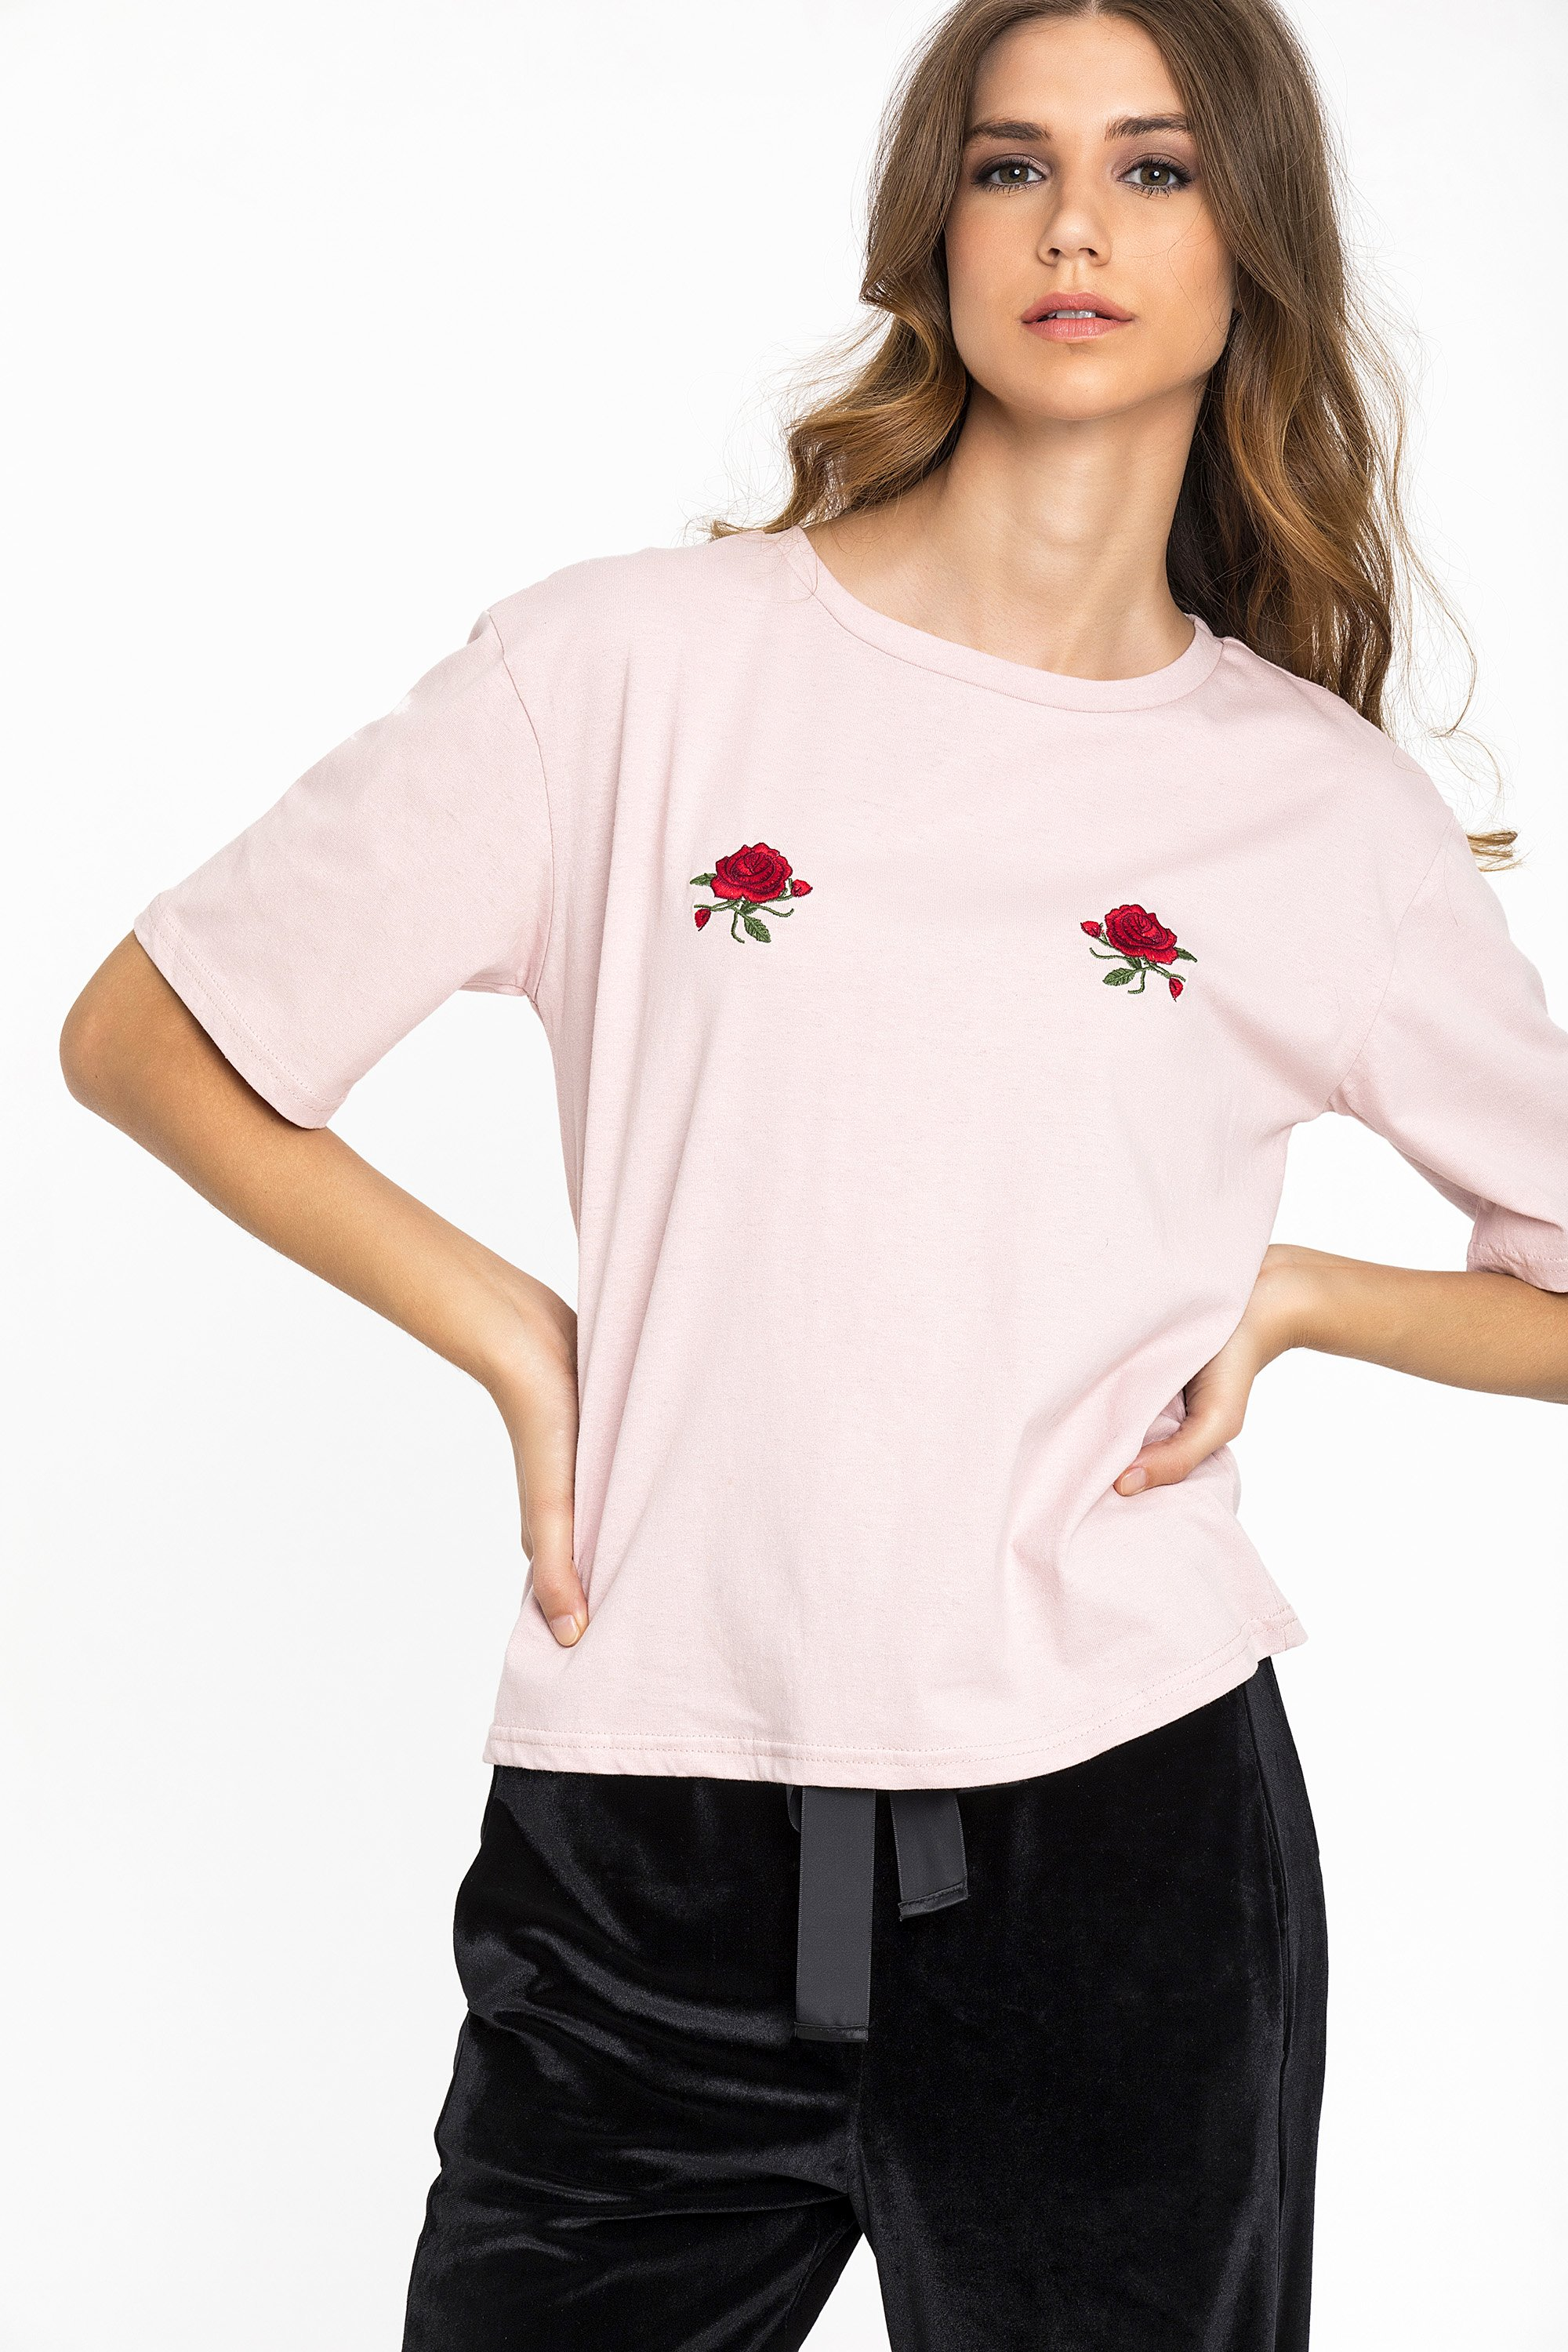 CHEST ROSE T-SHIRT - Ροζ clothes   tops   μπλούζες